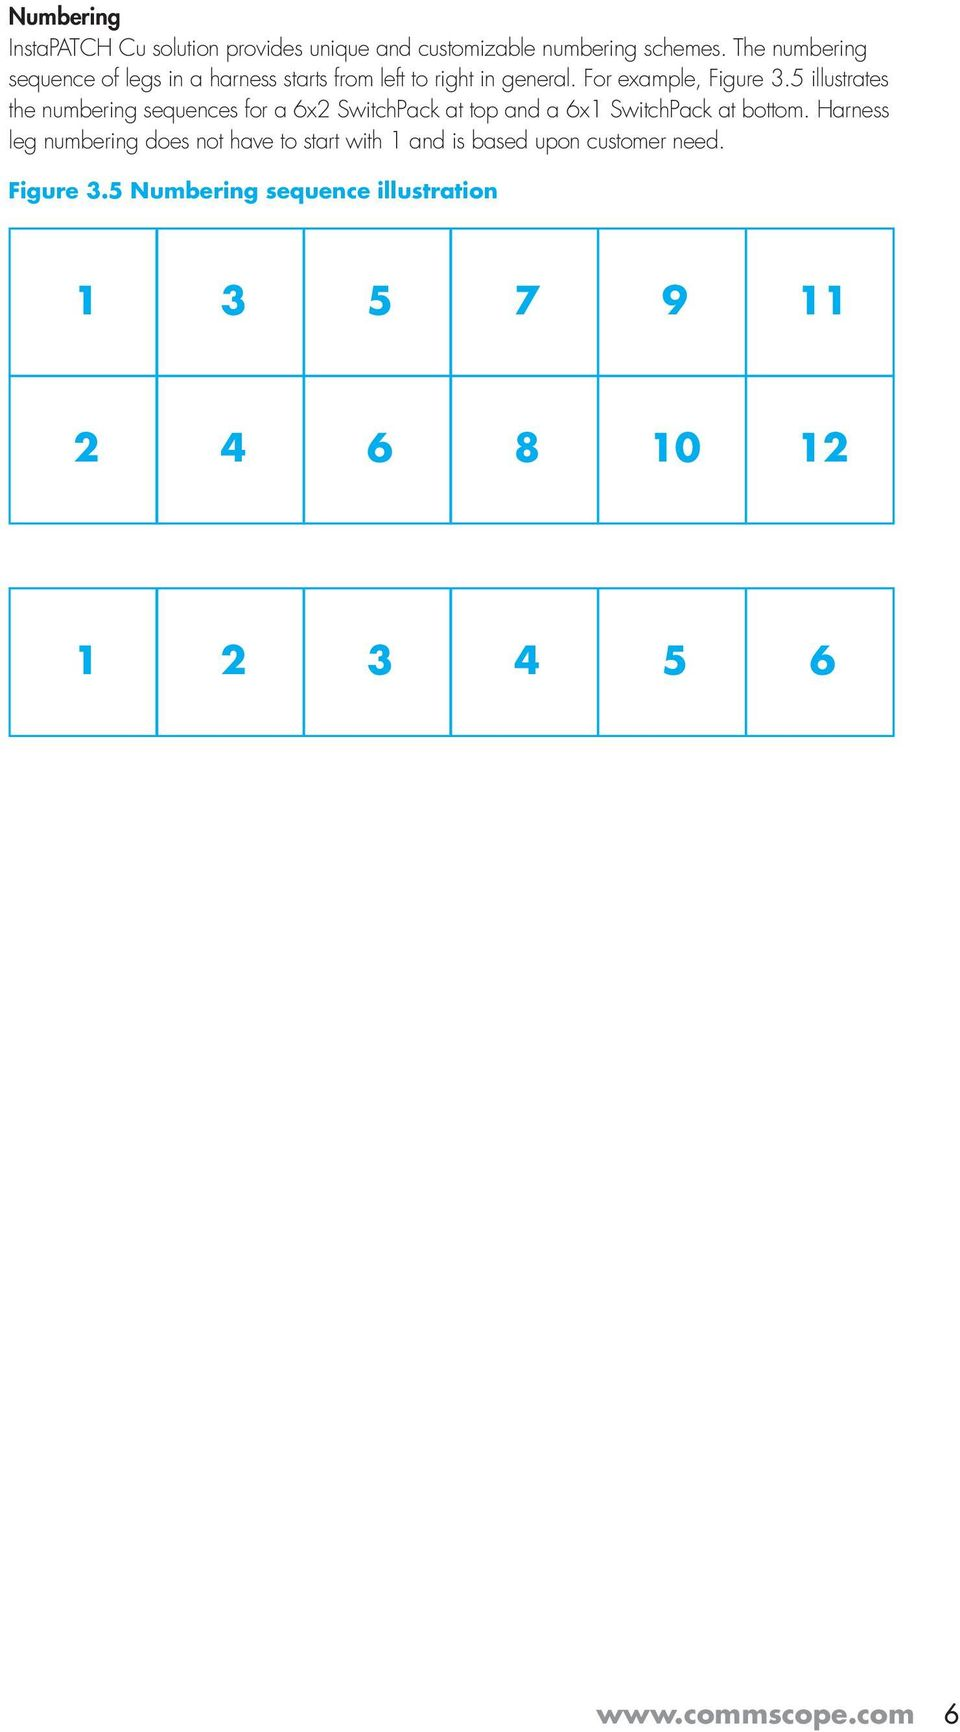 5 illustrates the numbering sequences for a 6x2 SwitchPack at top and a 6x1 SwitchPack at bottom.